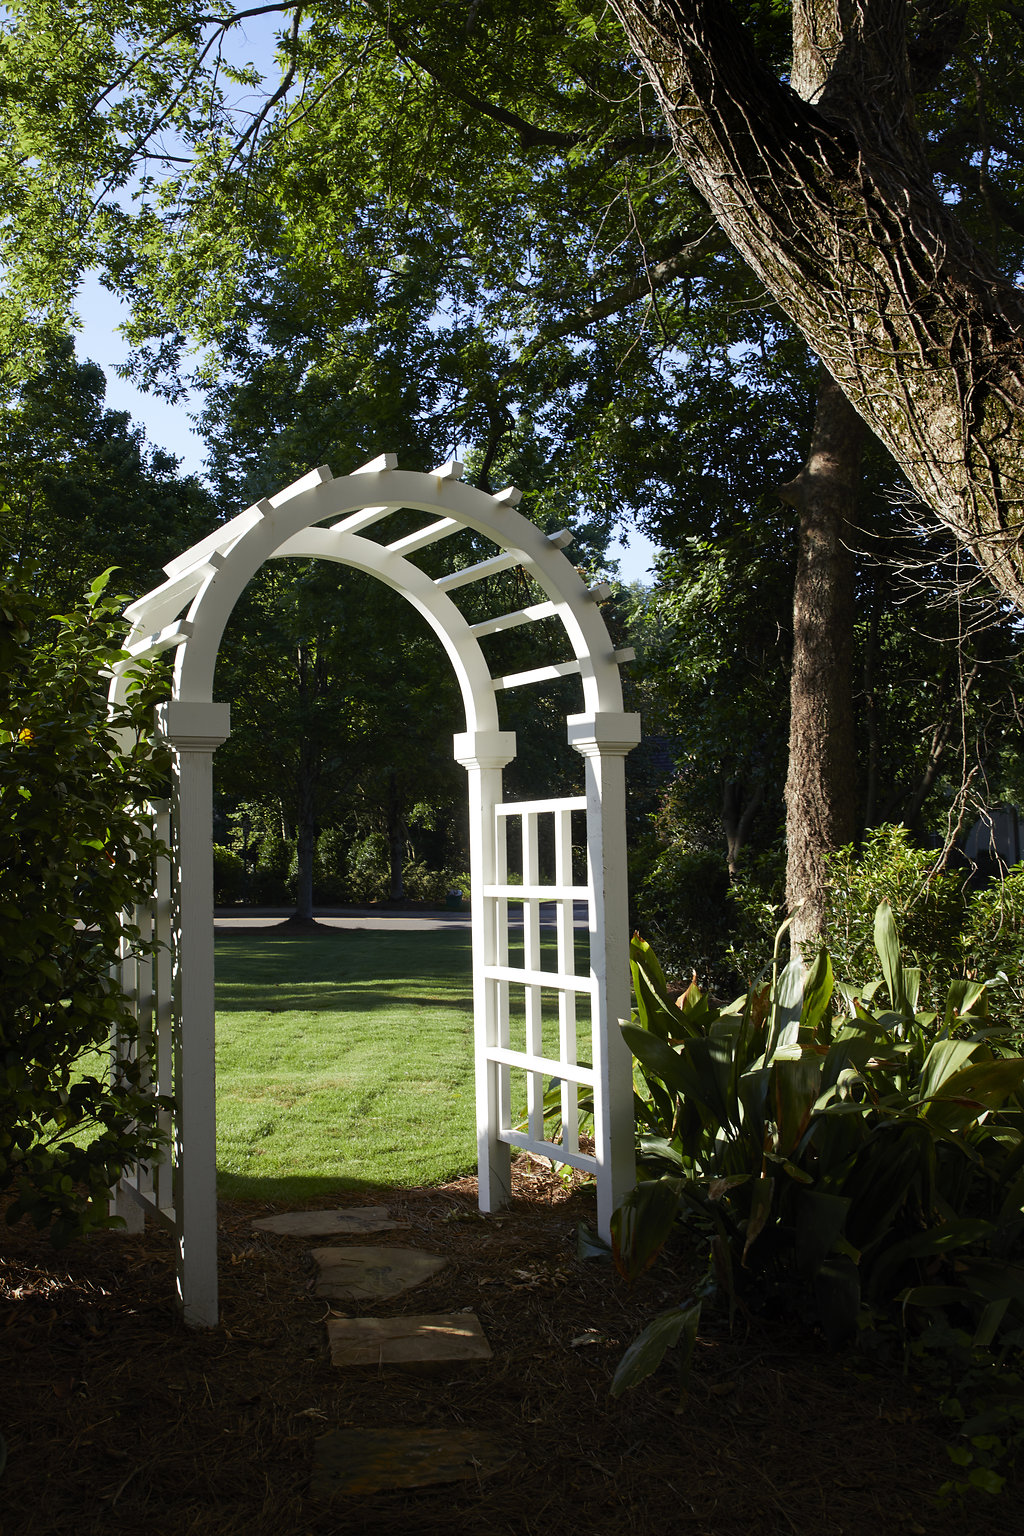 Archway surrounded by greenery and trees.